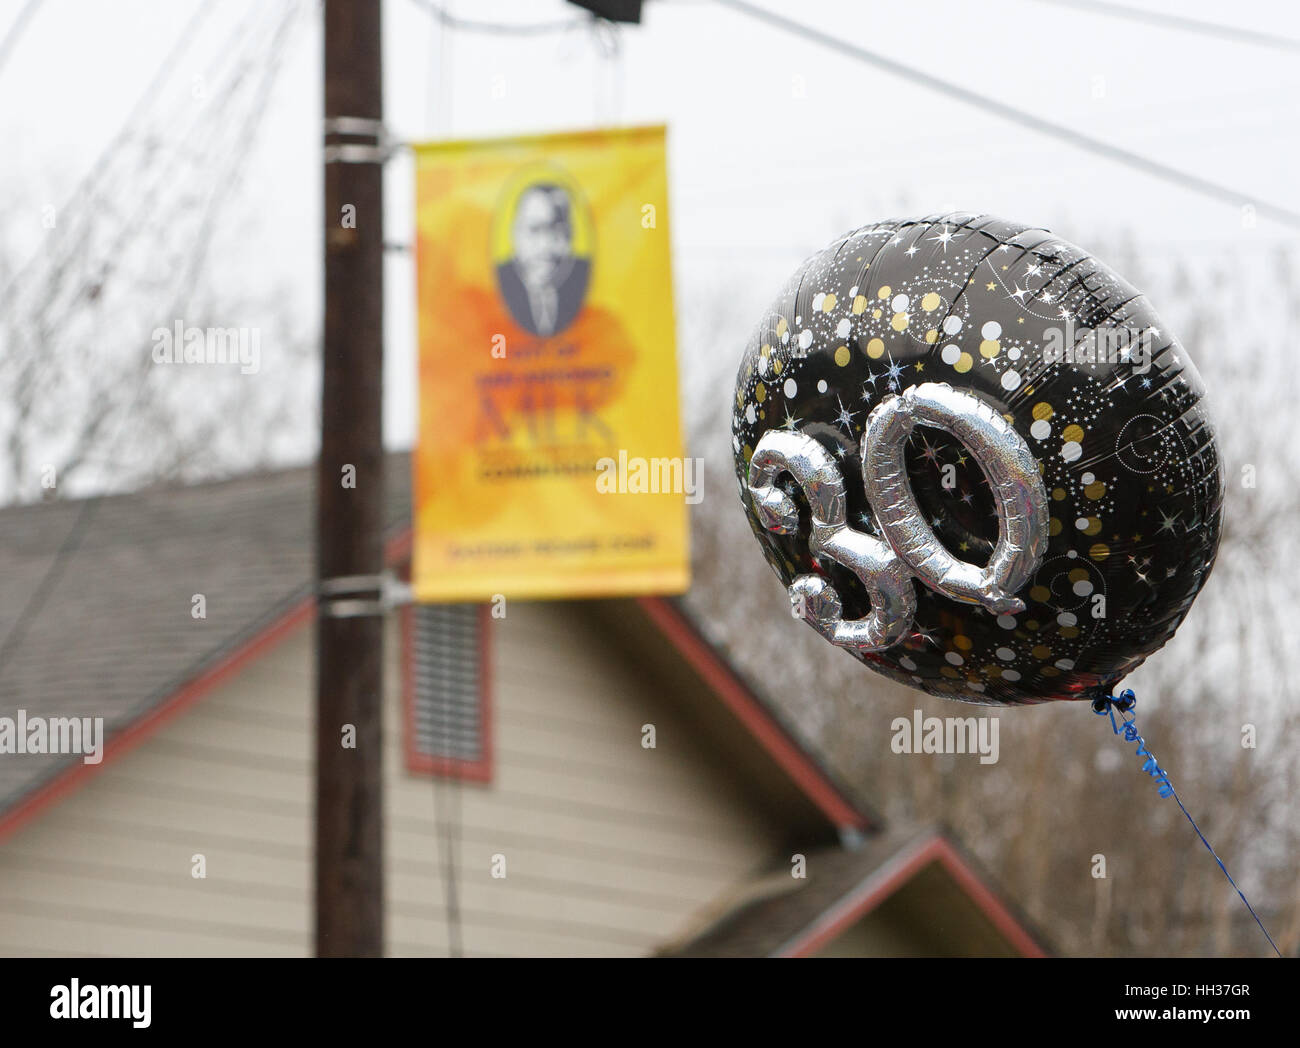 San Antonio, USA. 16th January, 2017. A balloon carried by a marcher emphasizes the 30th anniversary of the annual Stock Photo